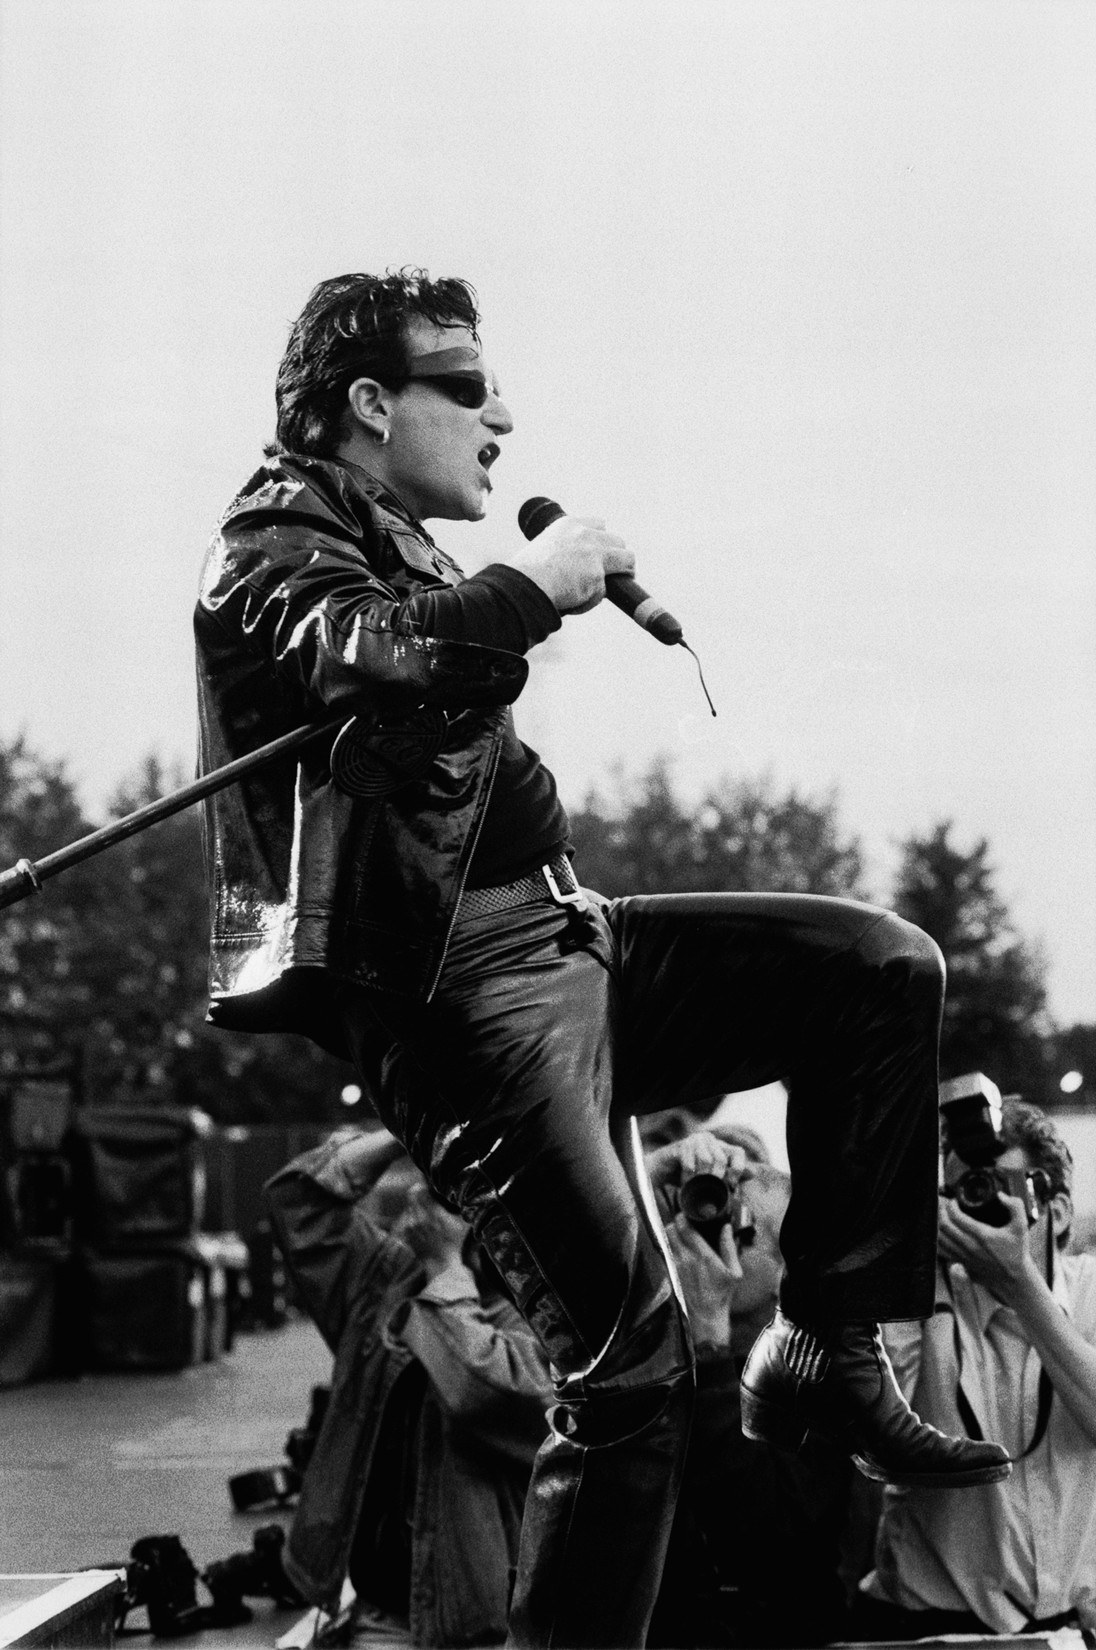 Bono, vocal, performs with U2 at the Goffert in Nijmegen, Netherlands on Aug. 3, 1993.